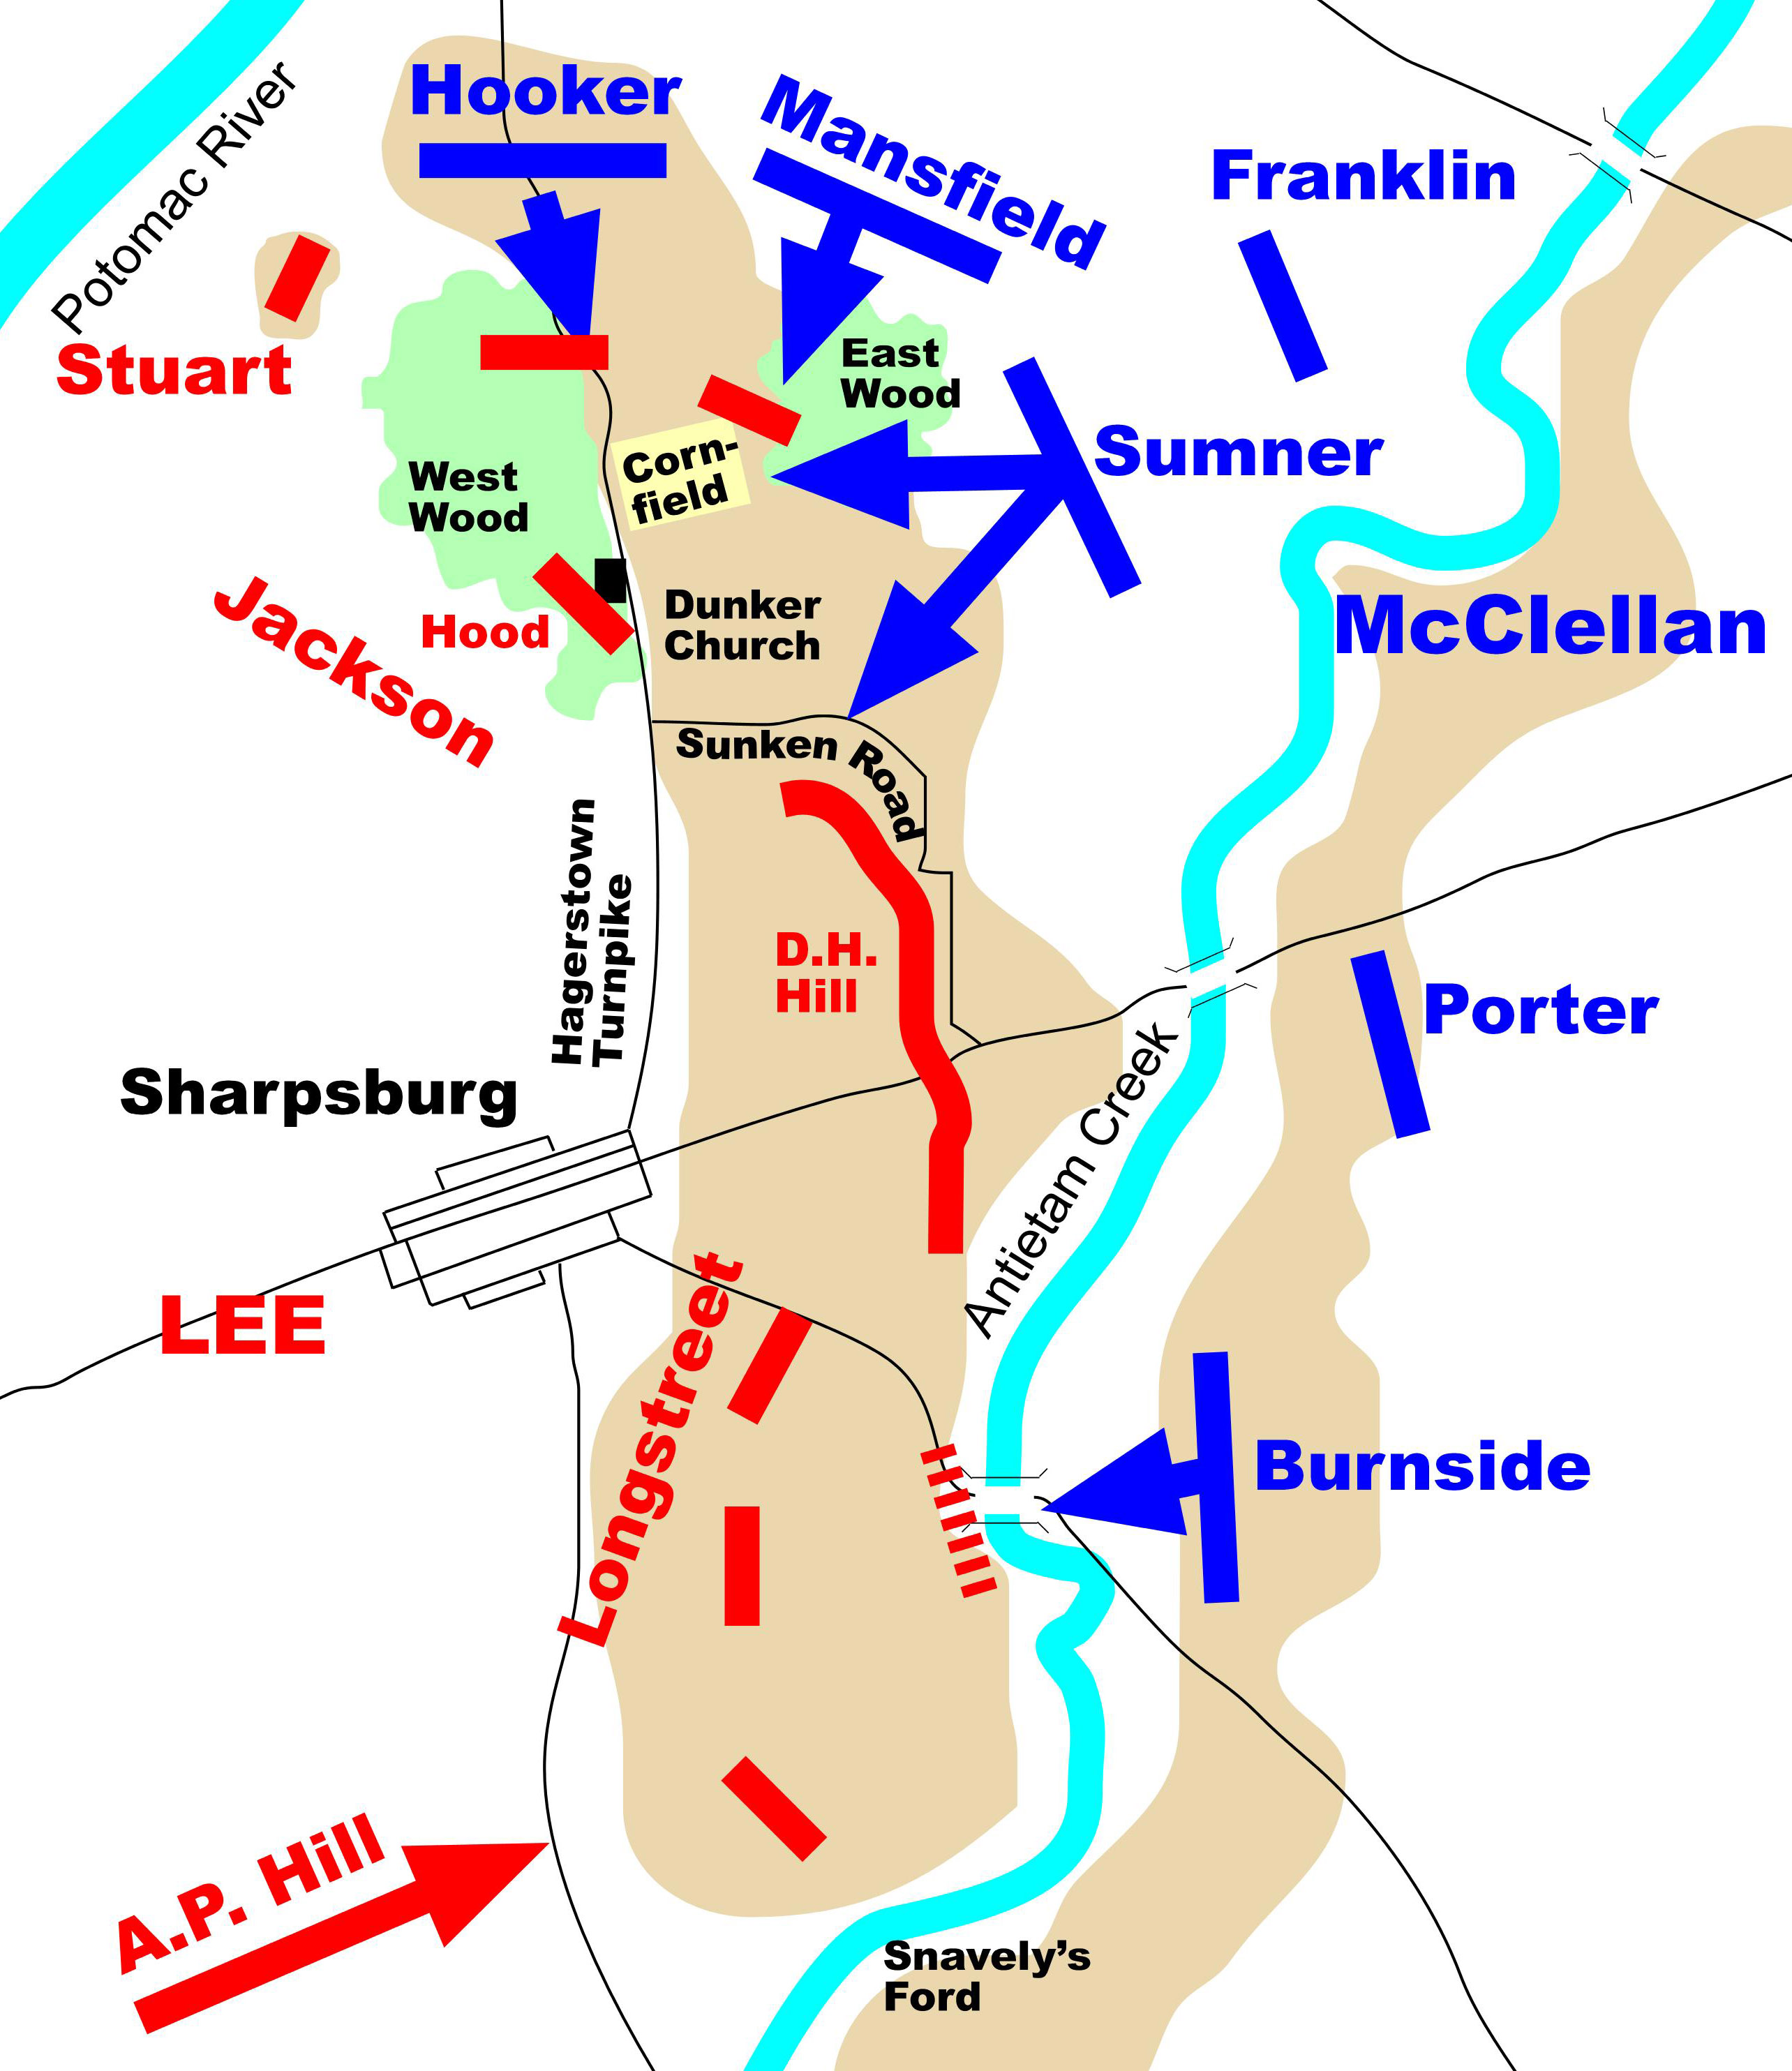 directions to battle of the boyne site